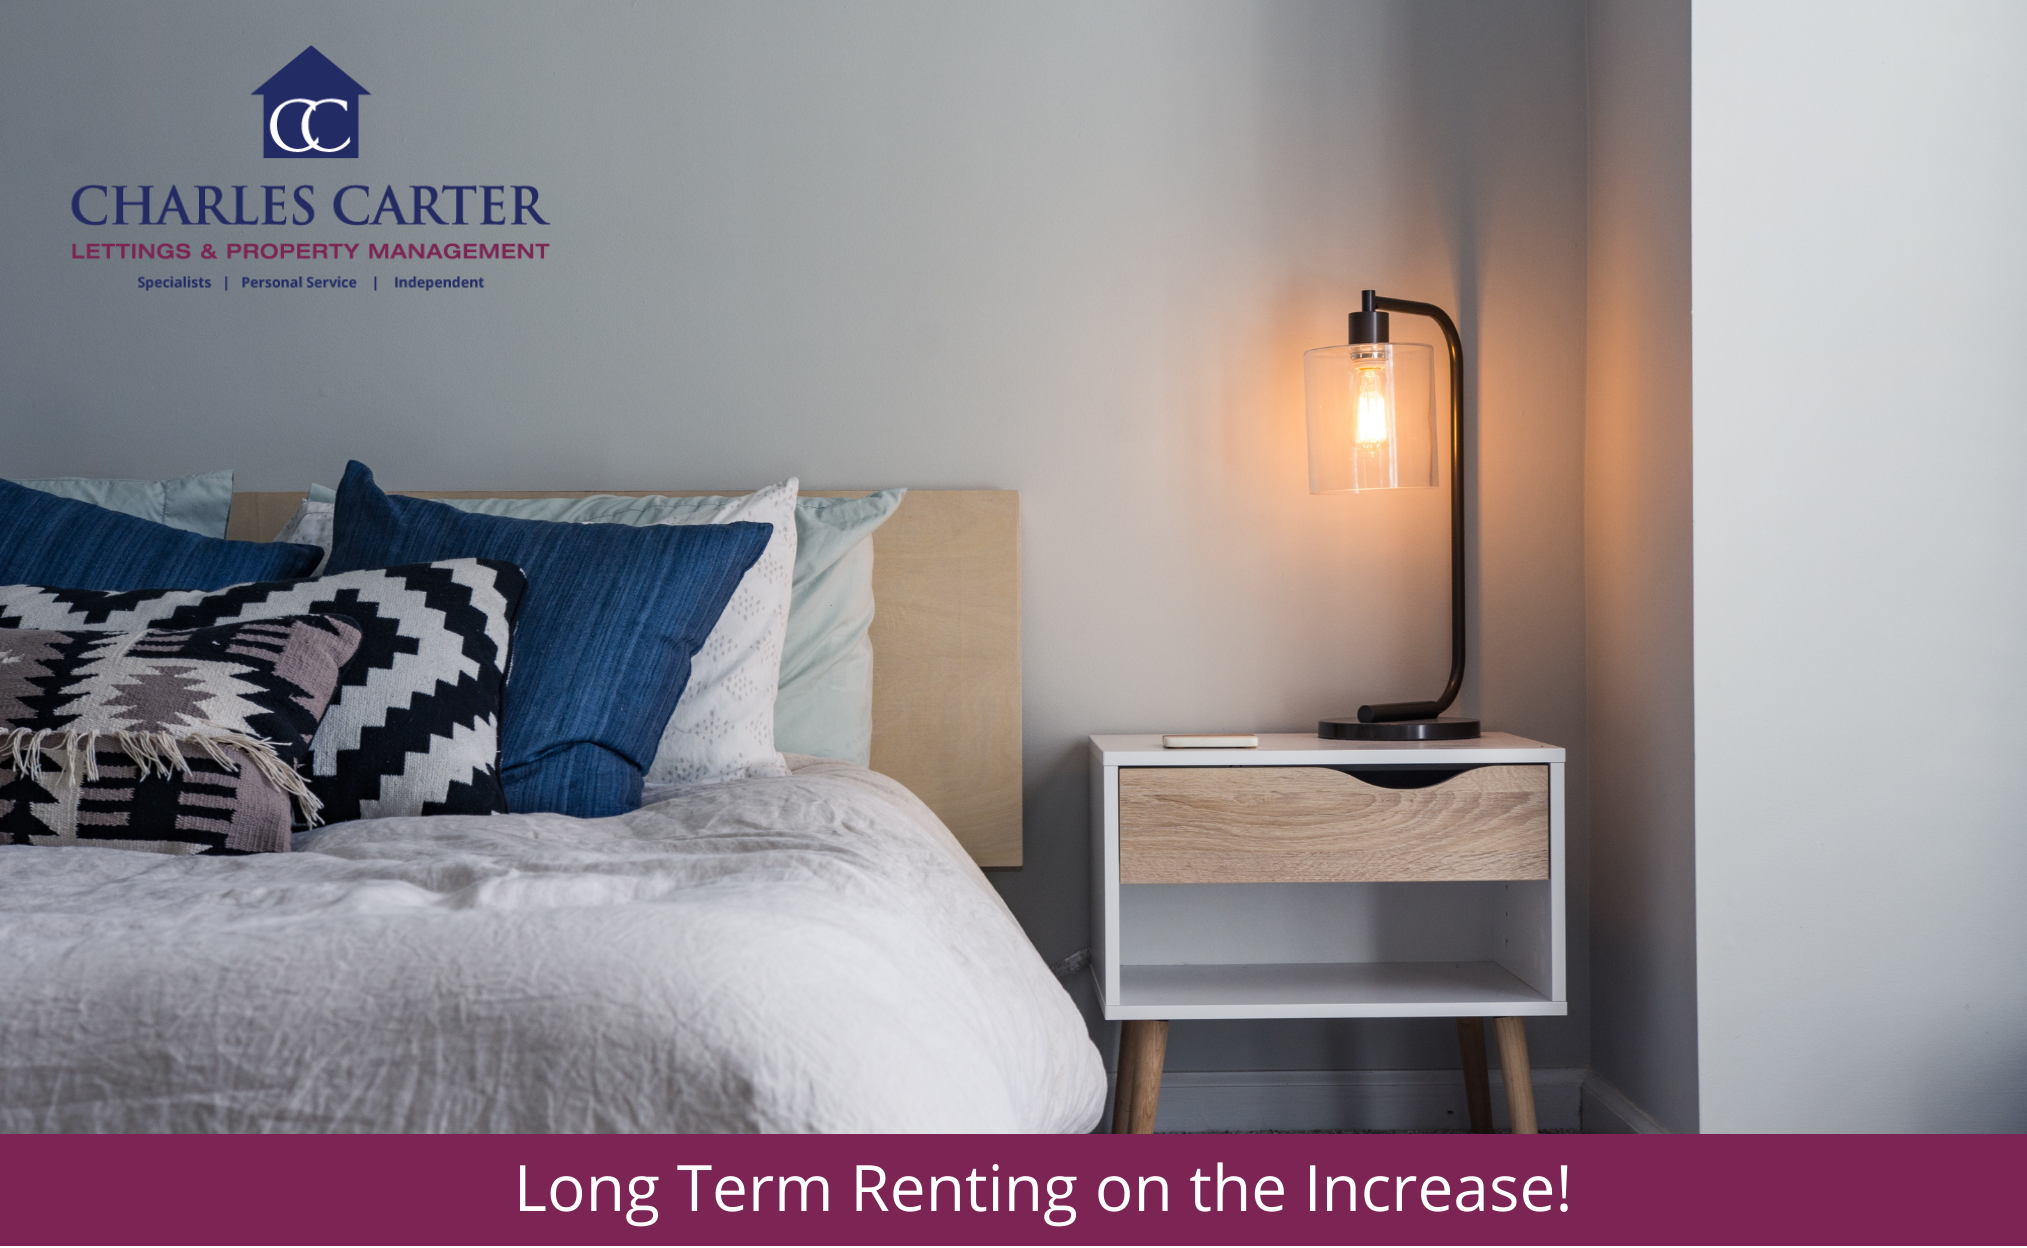 Long Term Renting on the Increase!